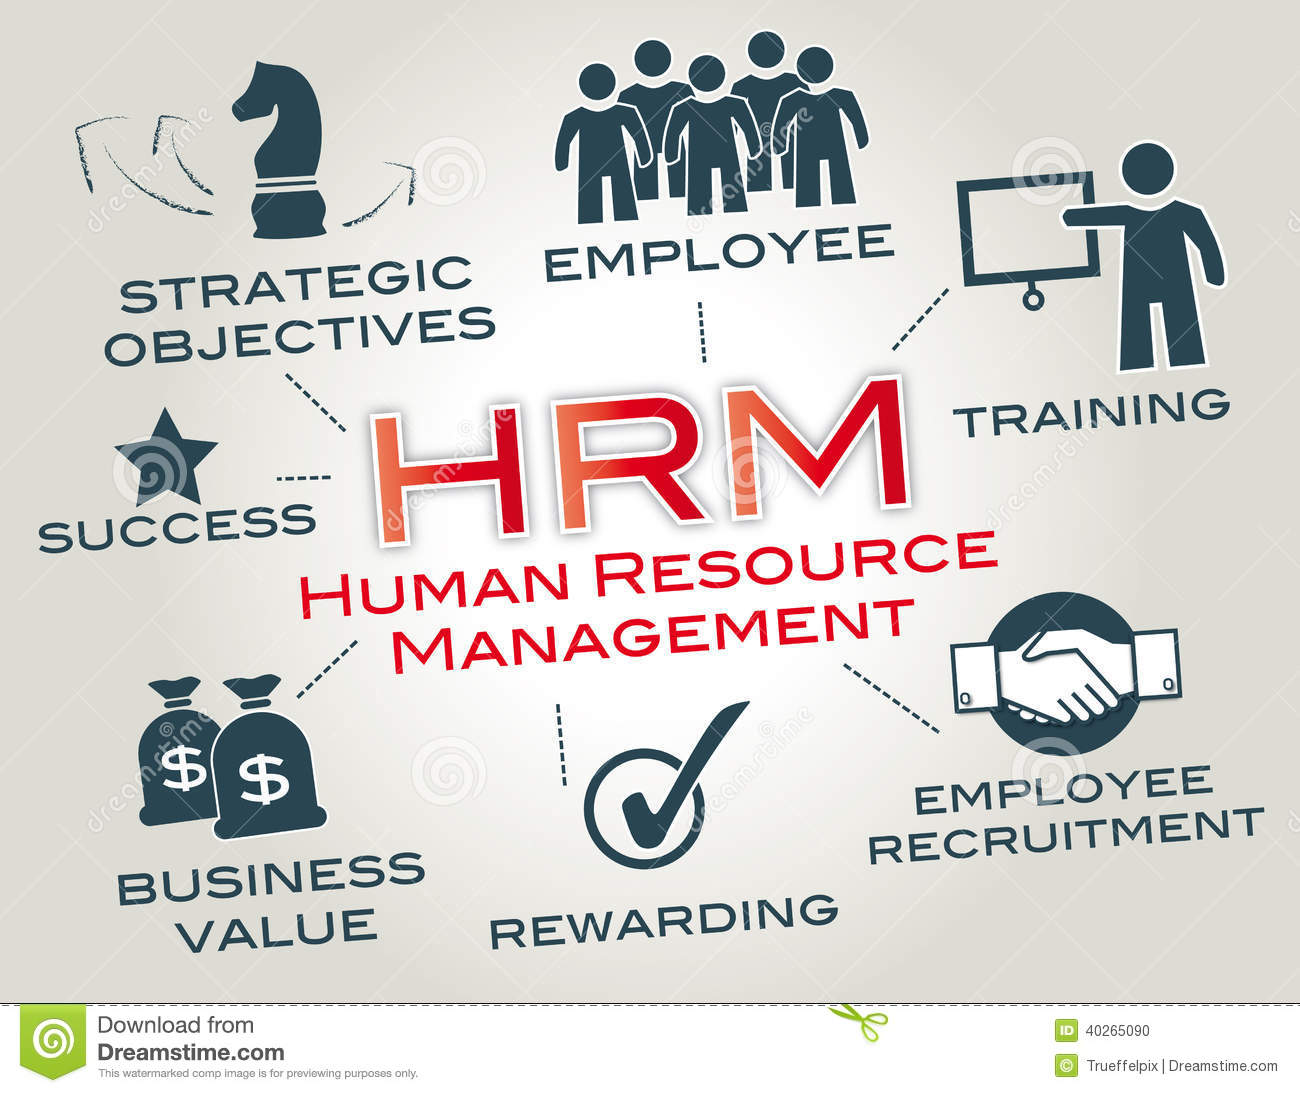 performance management in a human resources A good place for supervisors and managers to start when preparing for performance reviews is the employee's job description, past performance reviews, and development plans.